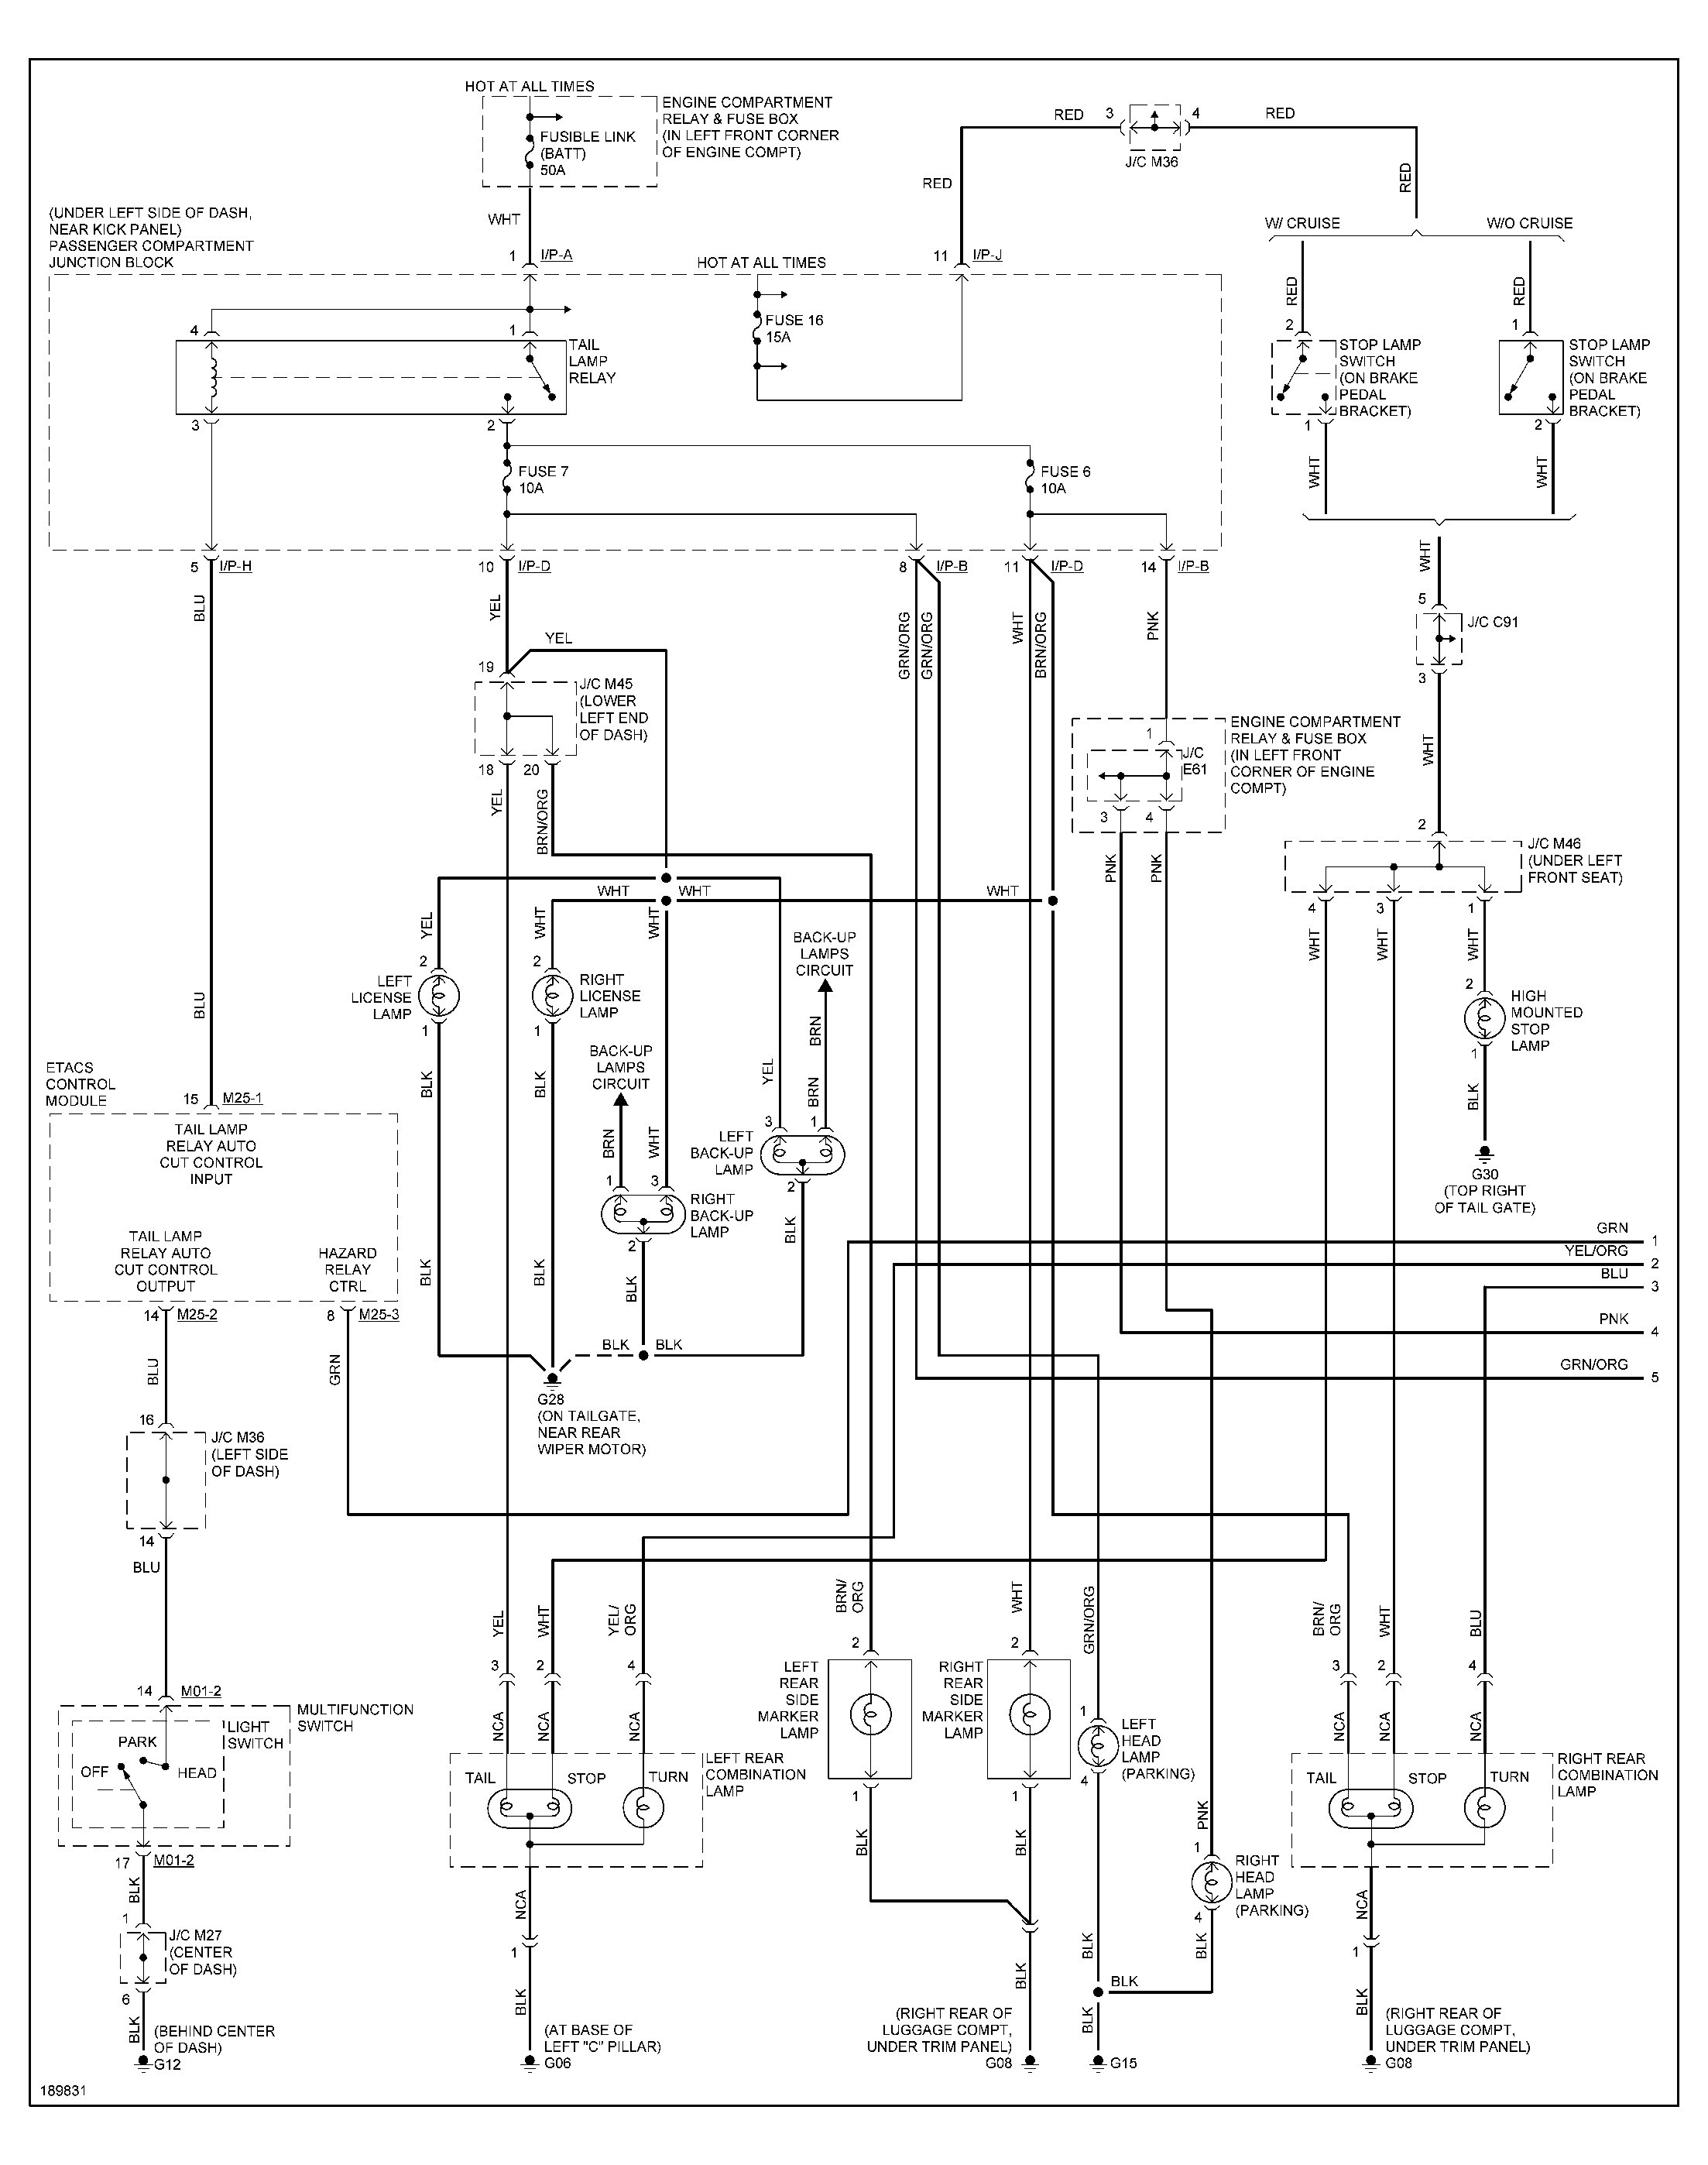 2005 Hyundai Elantra Parts Schematic